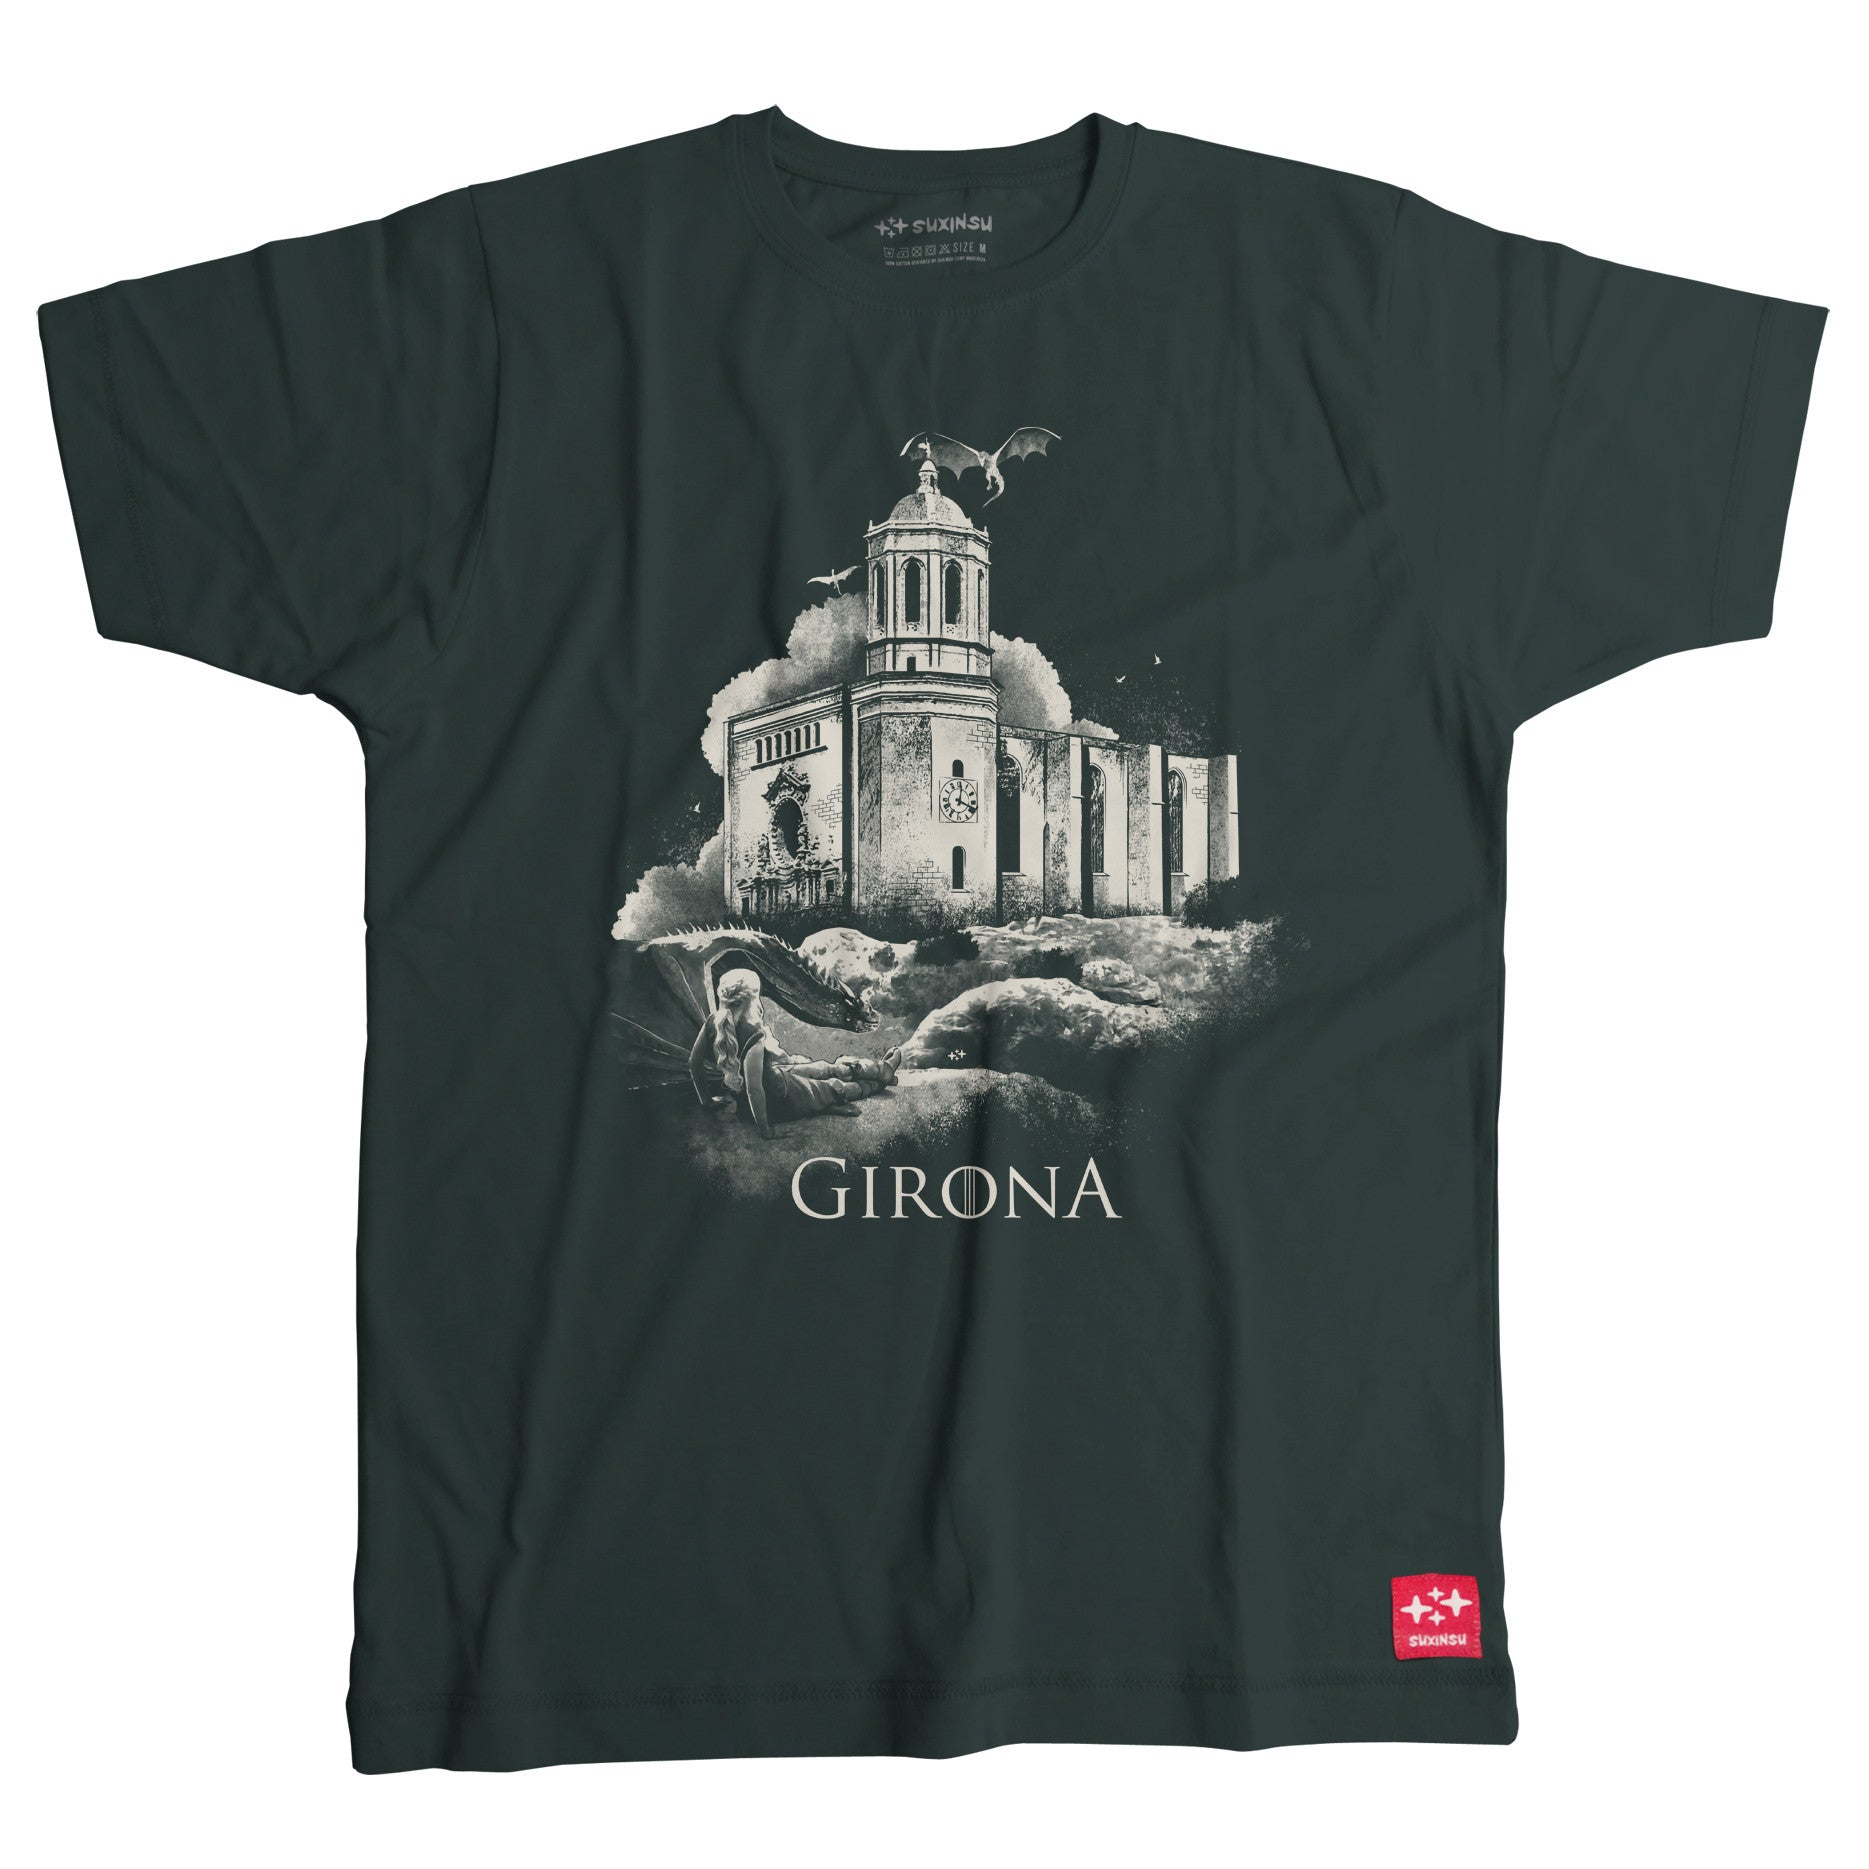 Girona Game of Thrones t-shirt by Suxinsu